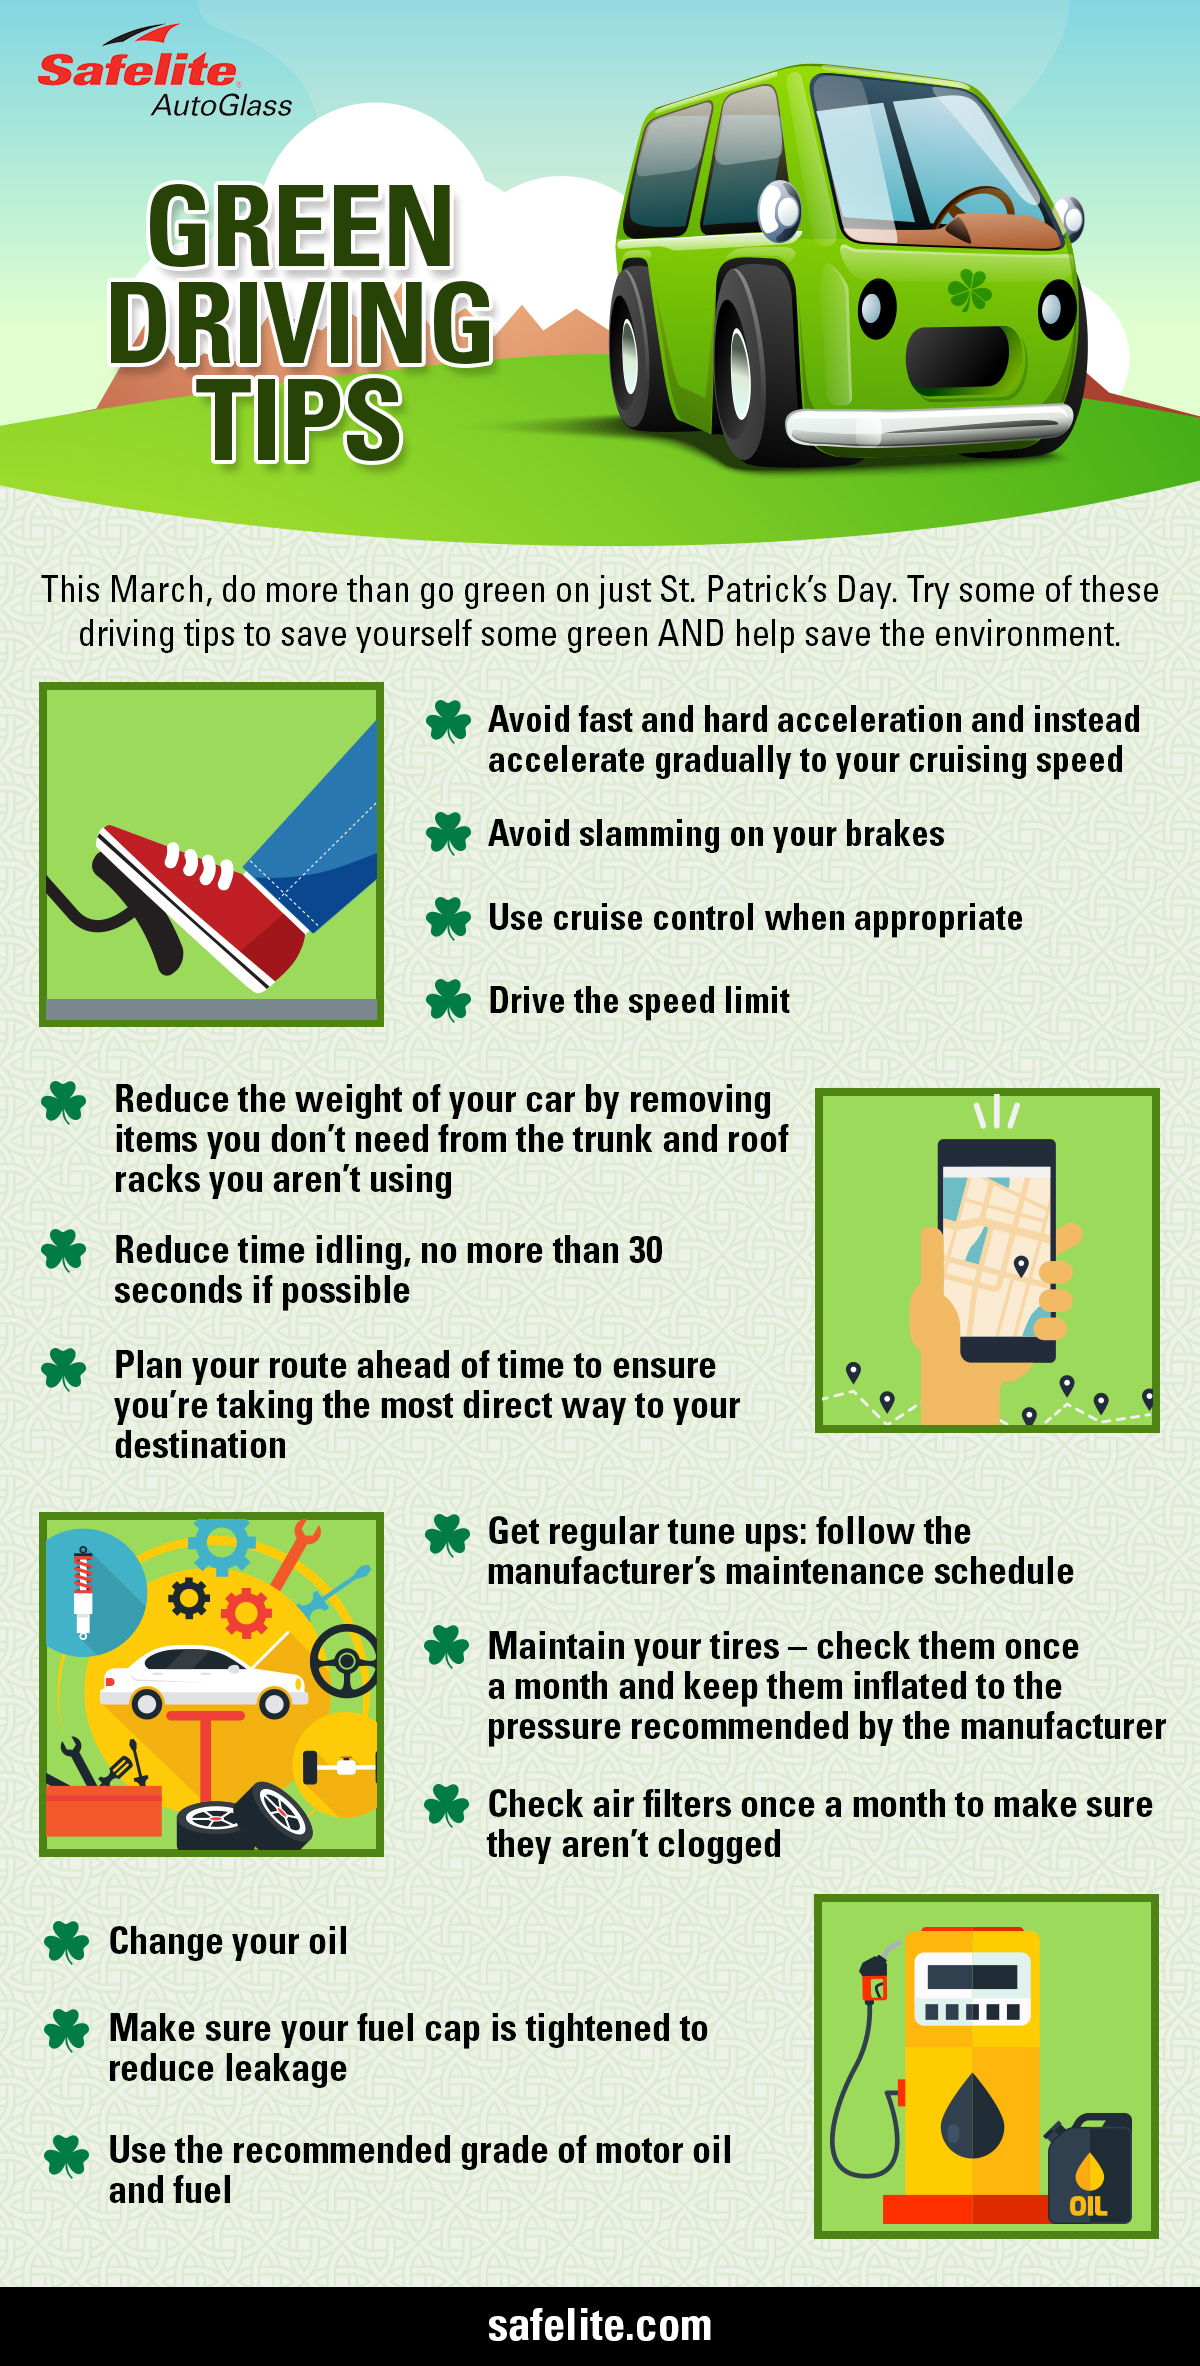 Check out these tips Safelite is offering to help you drive green this St. Patrick's Day!